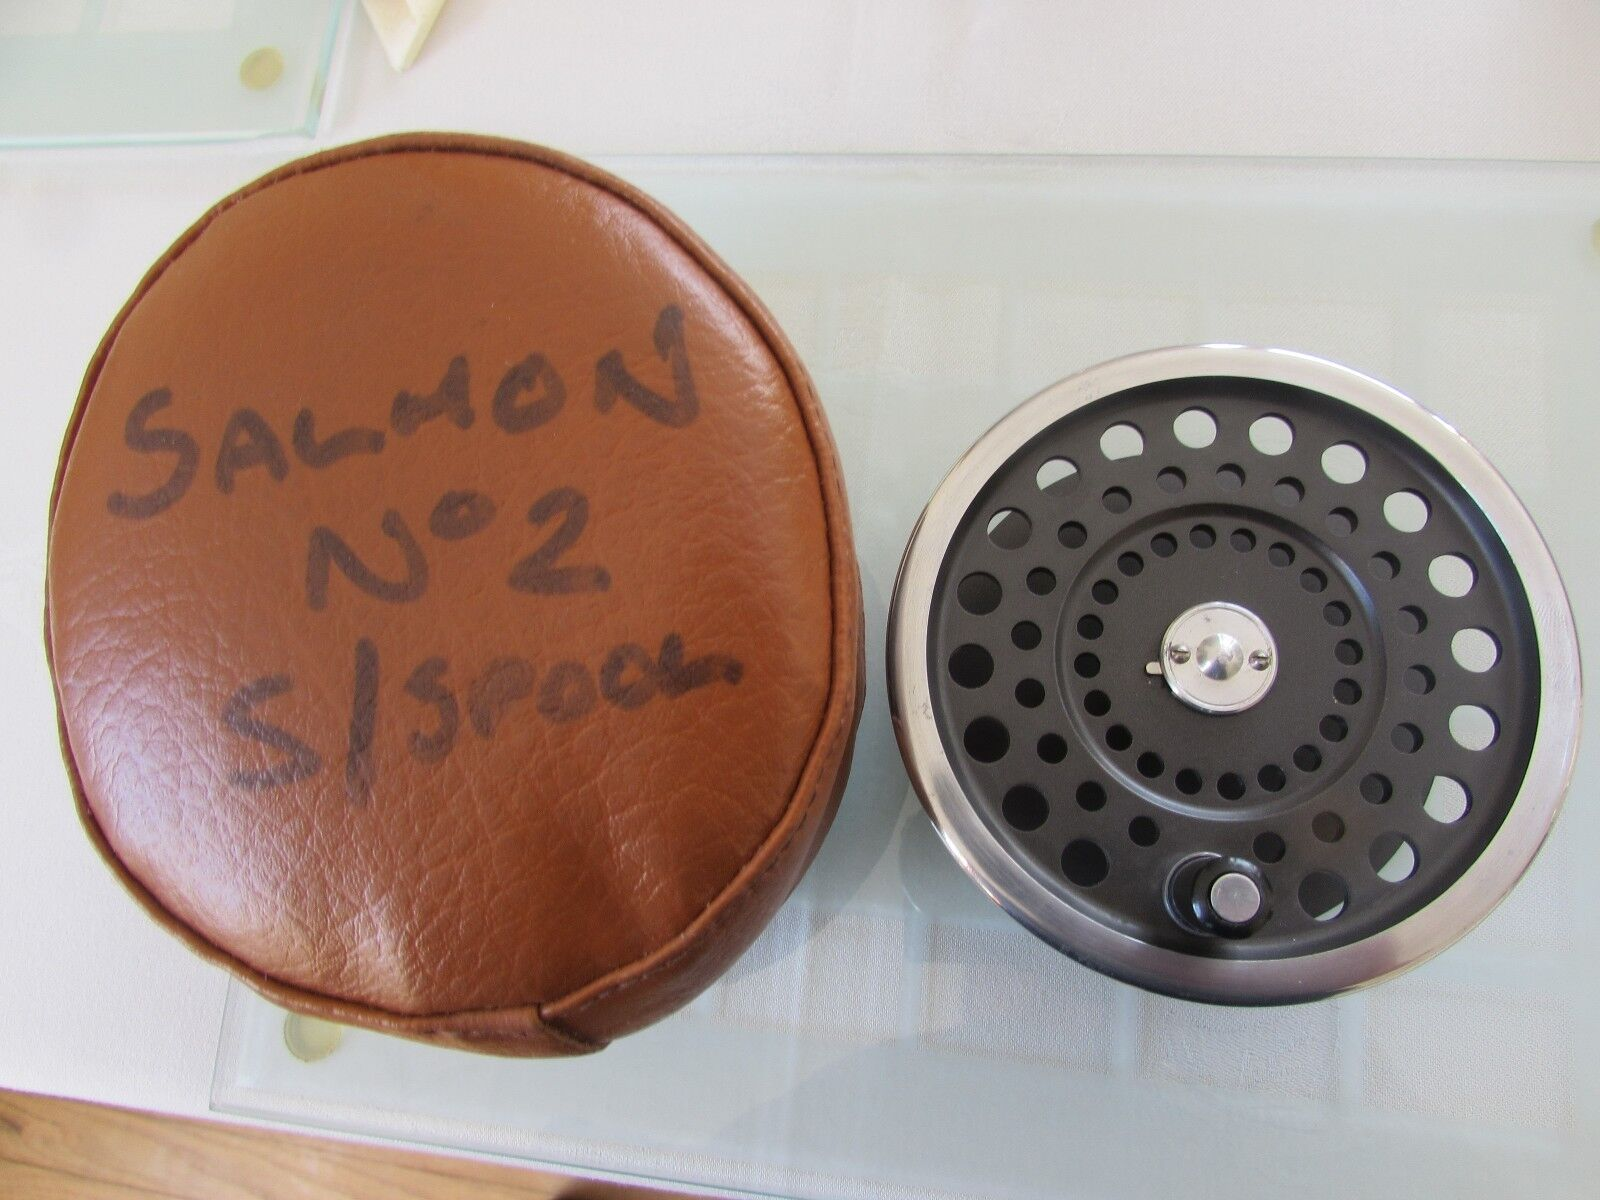 Excellent Excellent Excellent vintage hardy marquis no. 2 spool for salmon fly fishing reel + case.` 6c9223